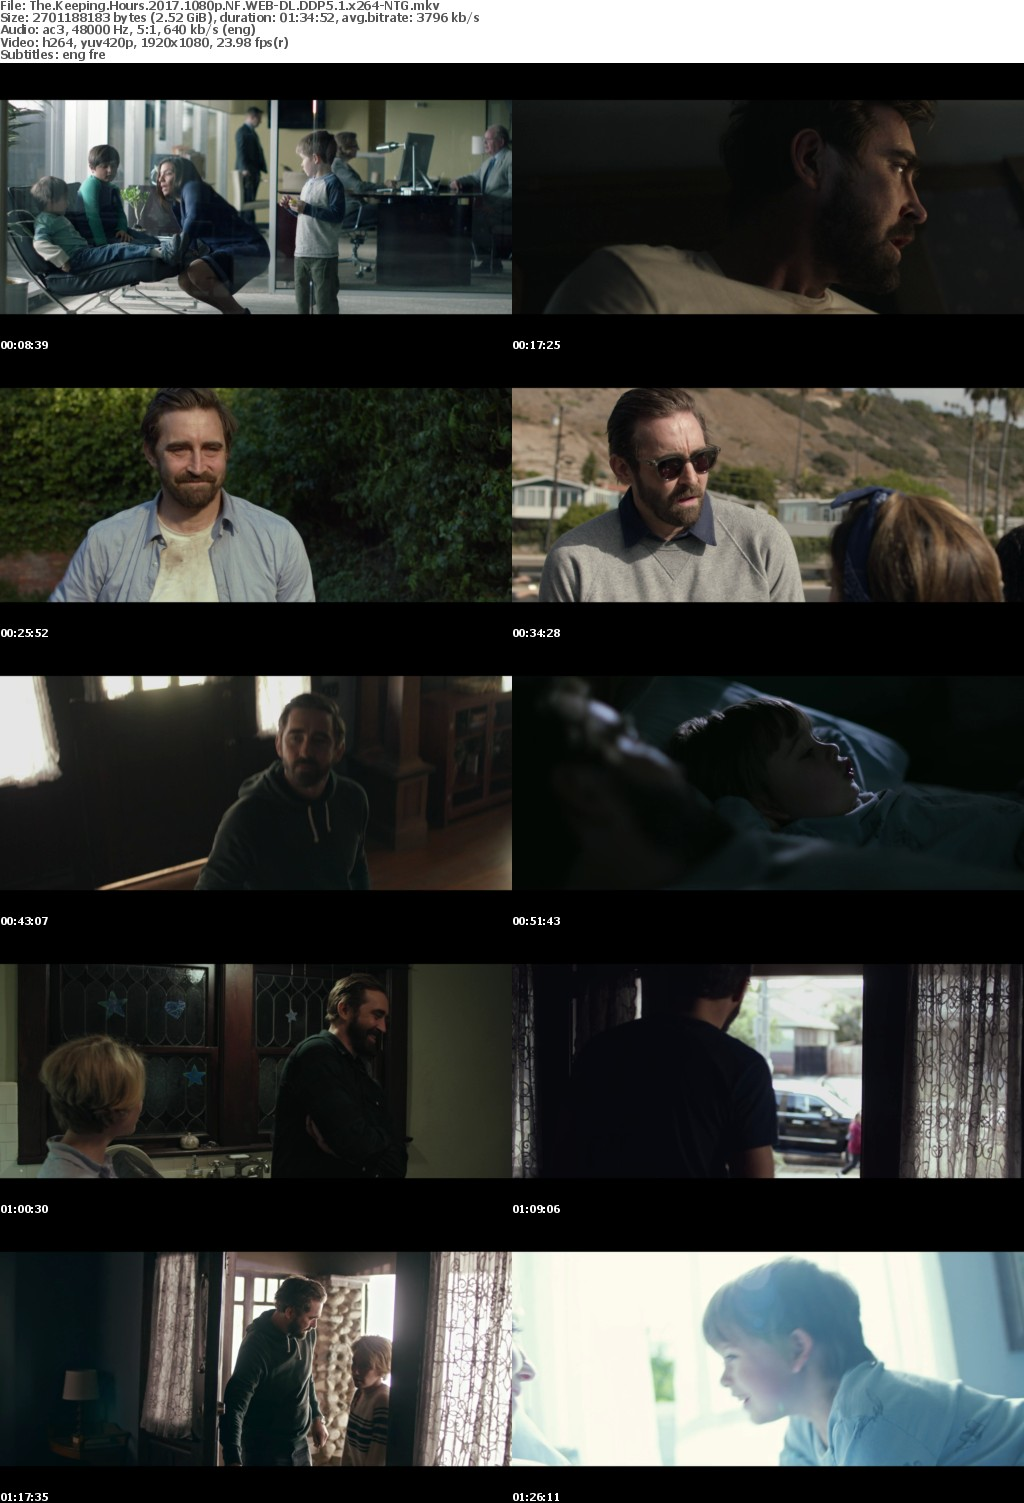 The Keeping Hours (2017) 1080p NF WEB-DL DDP5.1 x264-NTG